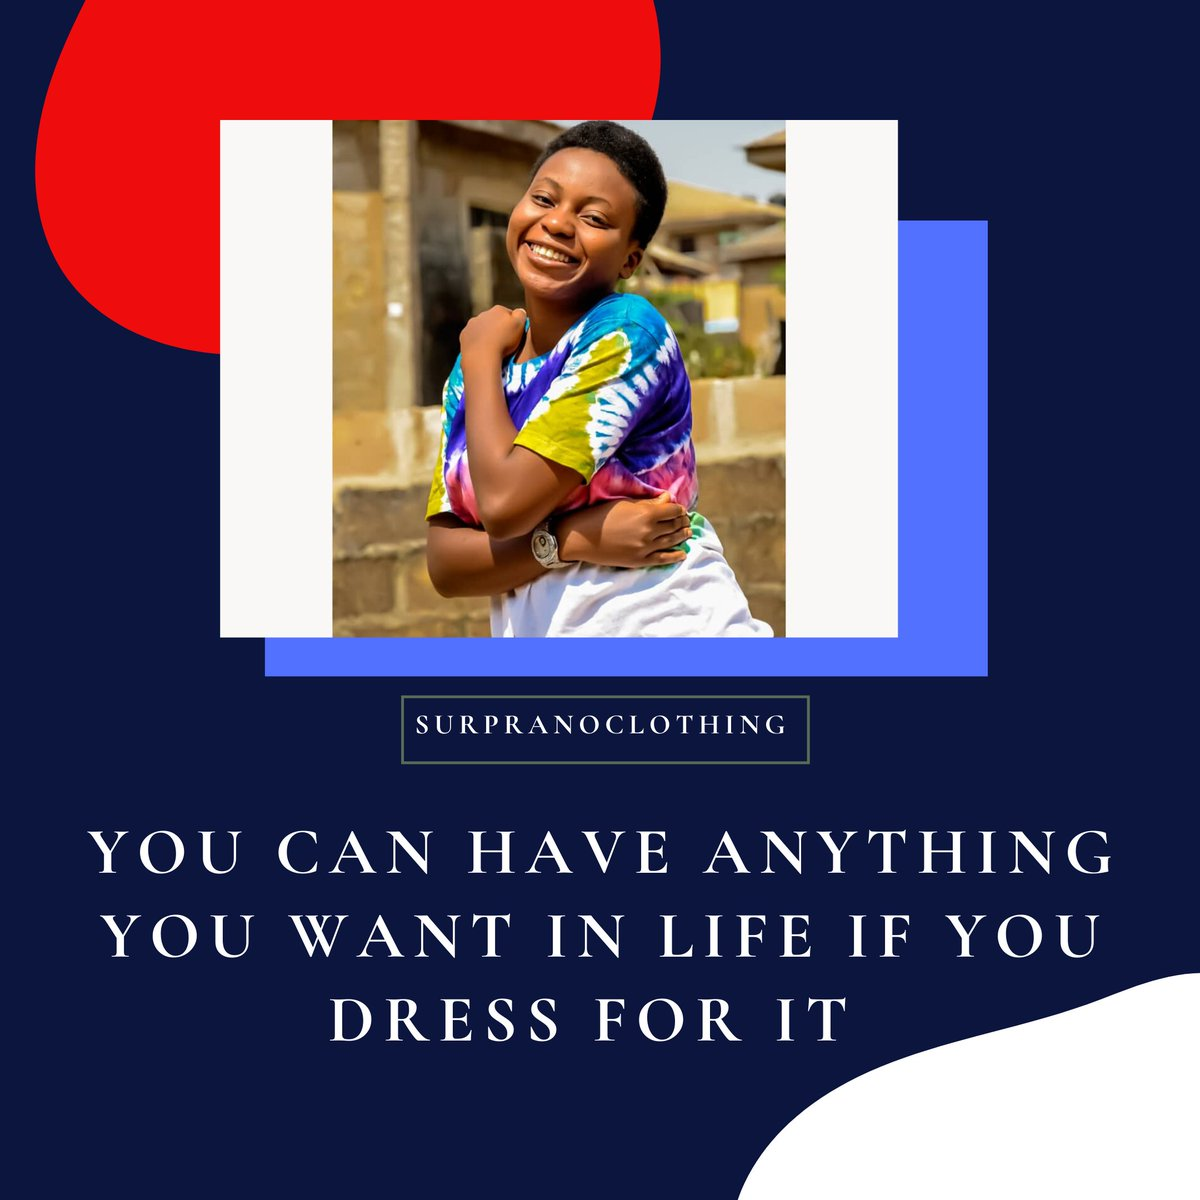 YOU CAN HAVE ANYTHING YOU WANT IN LIFE IF YOU DRESS FOR IT AND AT SURPRANOCLOTHING WE MAKE THE BEST DRESS TO SUIT YOUR DREAMS. WE HAVE YOU COVERED, JUST GO AHEAD AND DO EXPLOITS.   It's almost weekend!!! TGIF Check our pages for sample pictures and place your order today. <br>http://pic.twitter.com/5sQqThpc4B